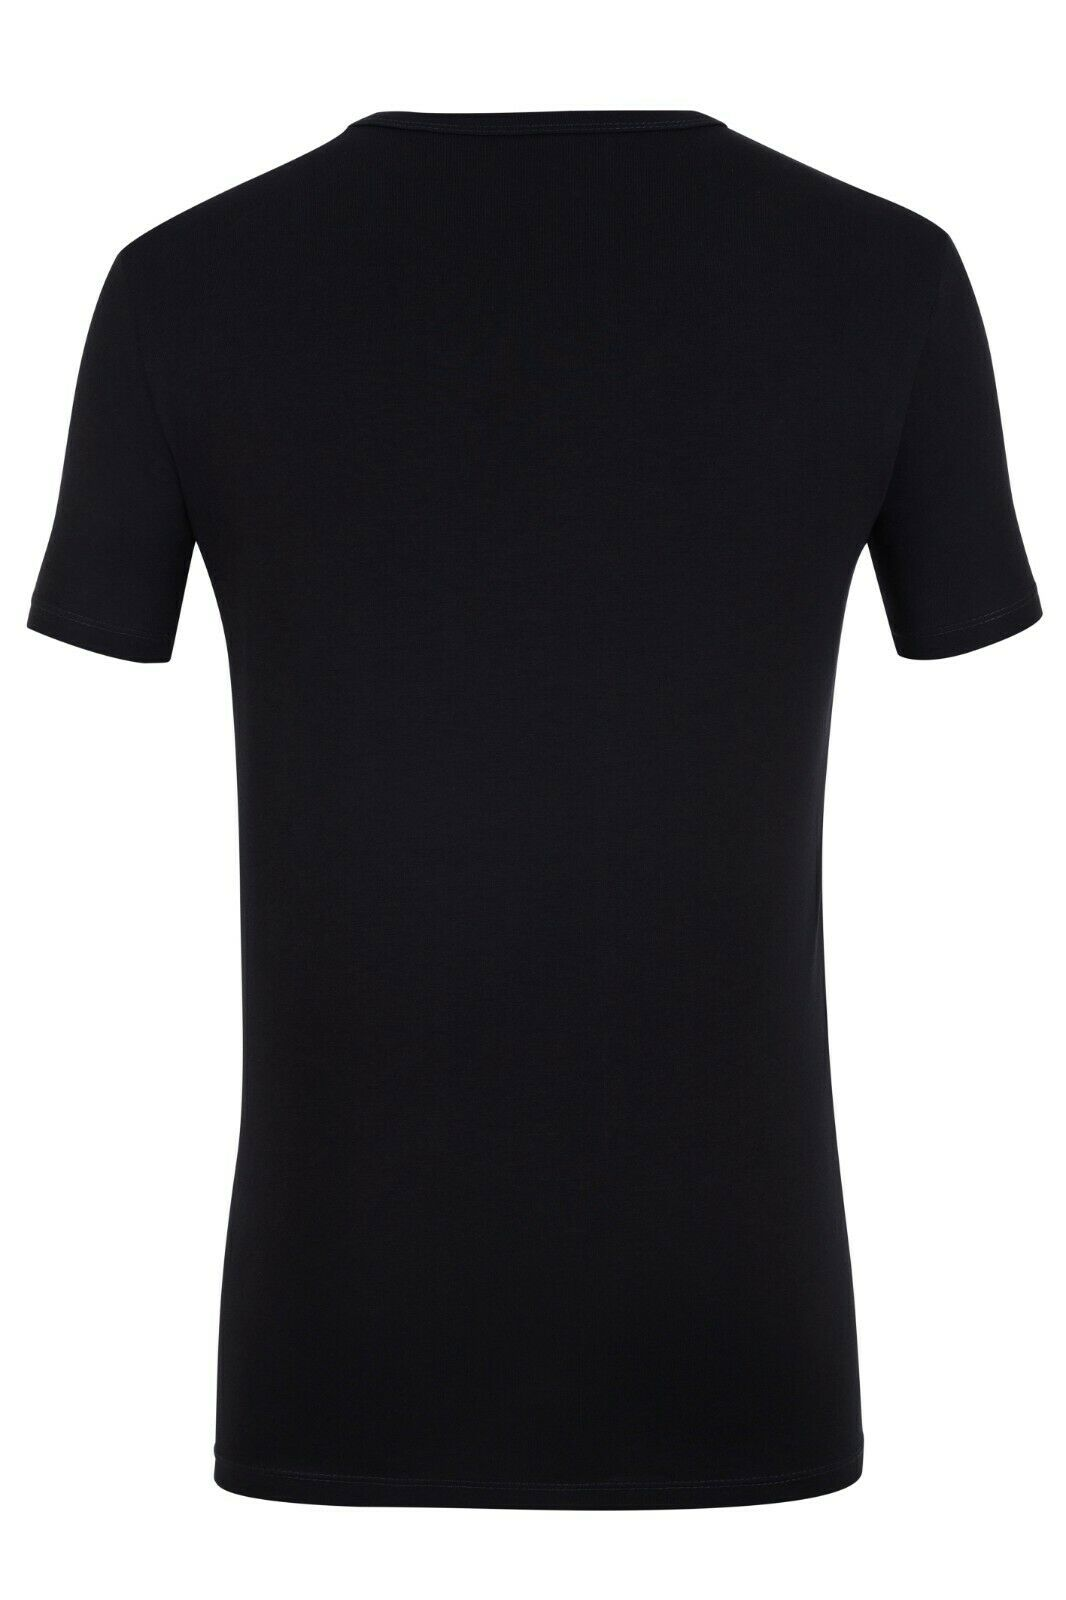 Emporio Armani EA7 Men T-Shirt Color Black Material Cotton